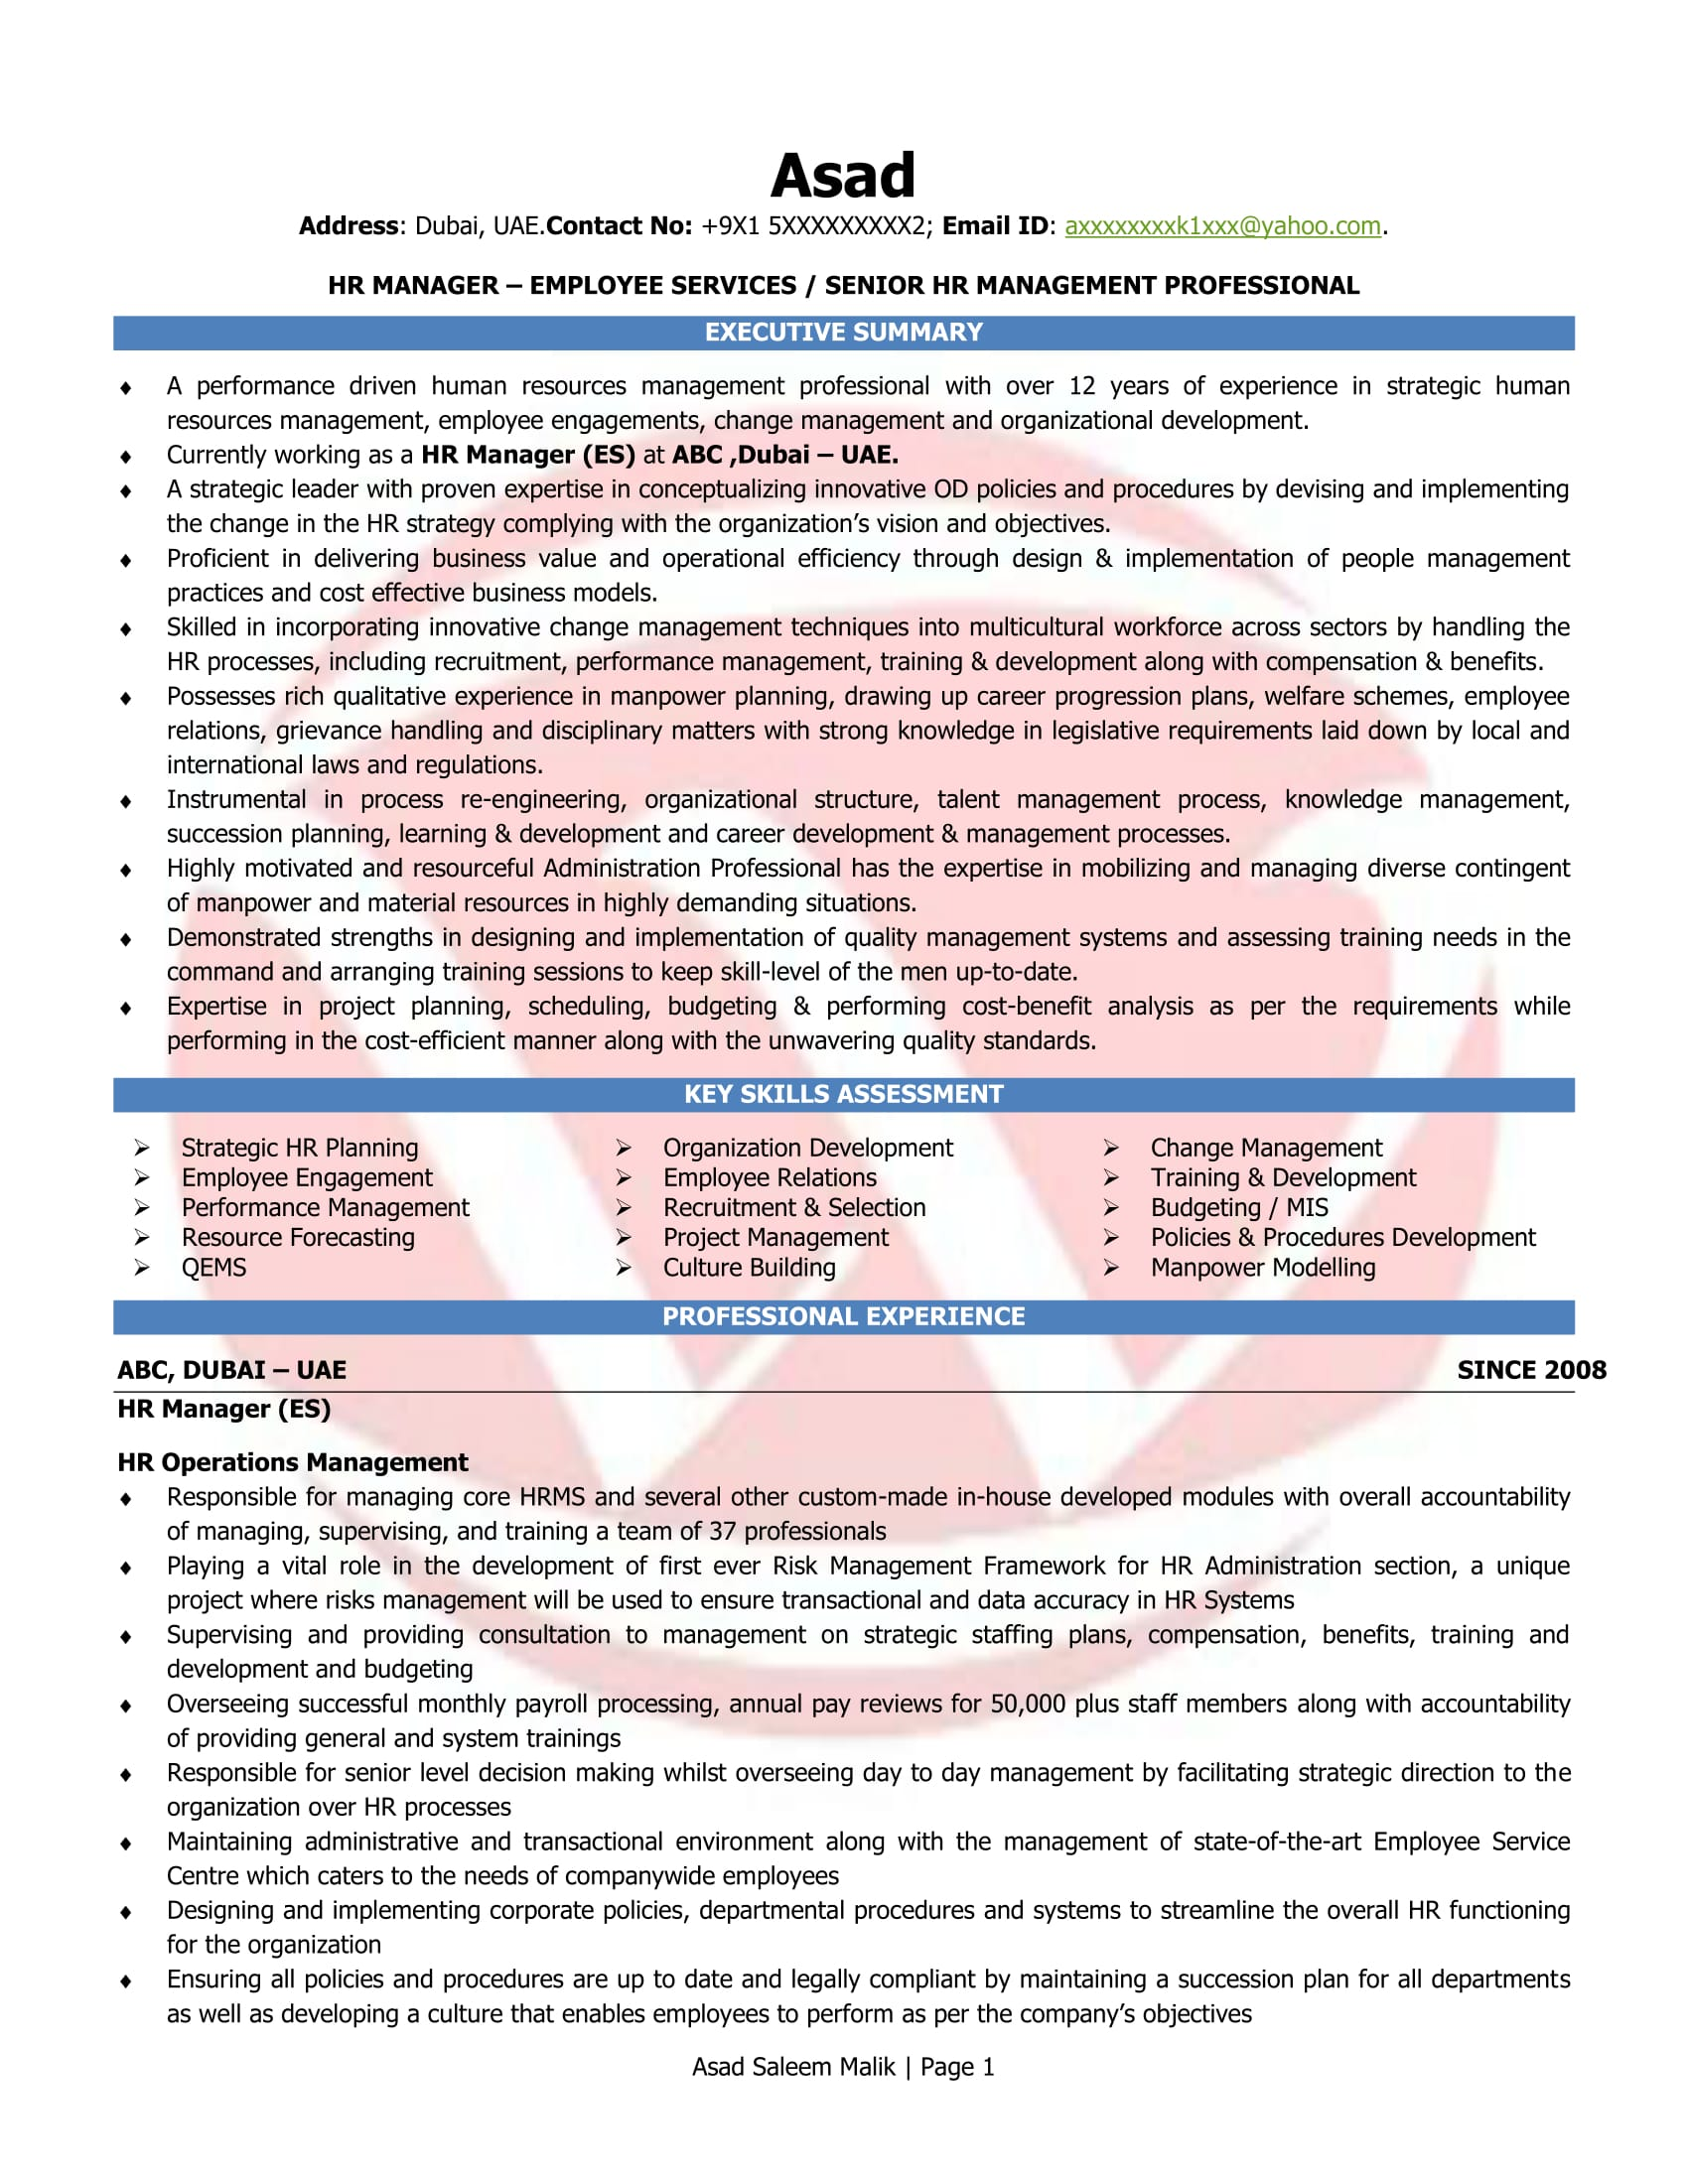 Hr Manager Resume Format Hr Manager Sample Resumes Download Resume Format Templates